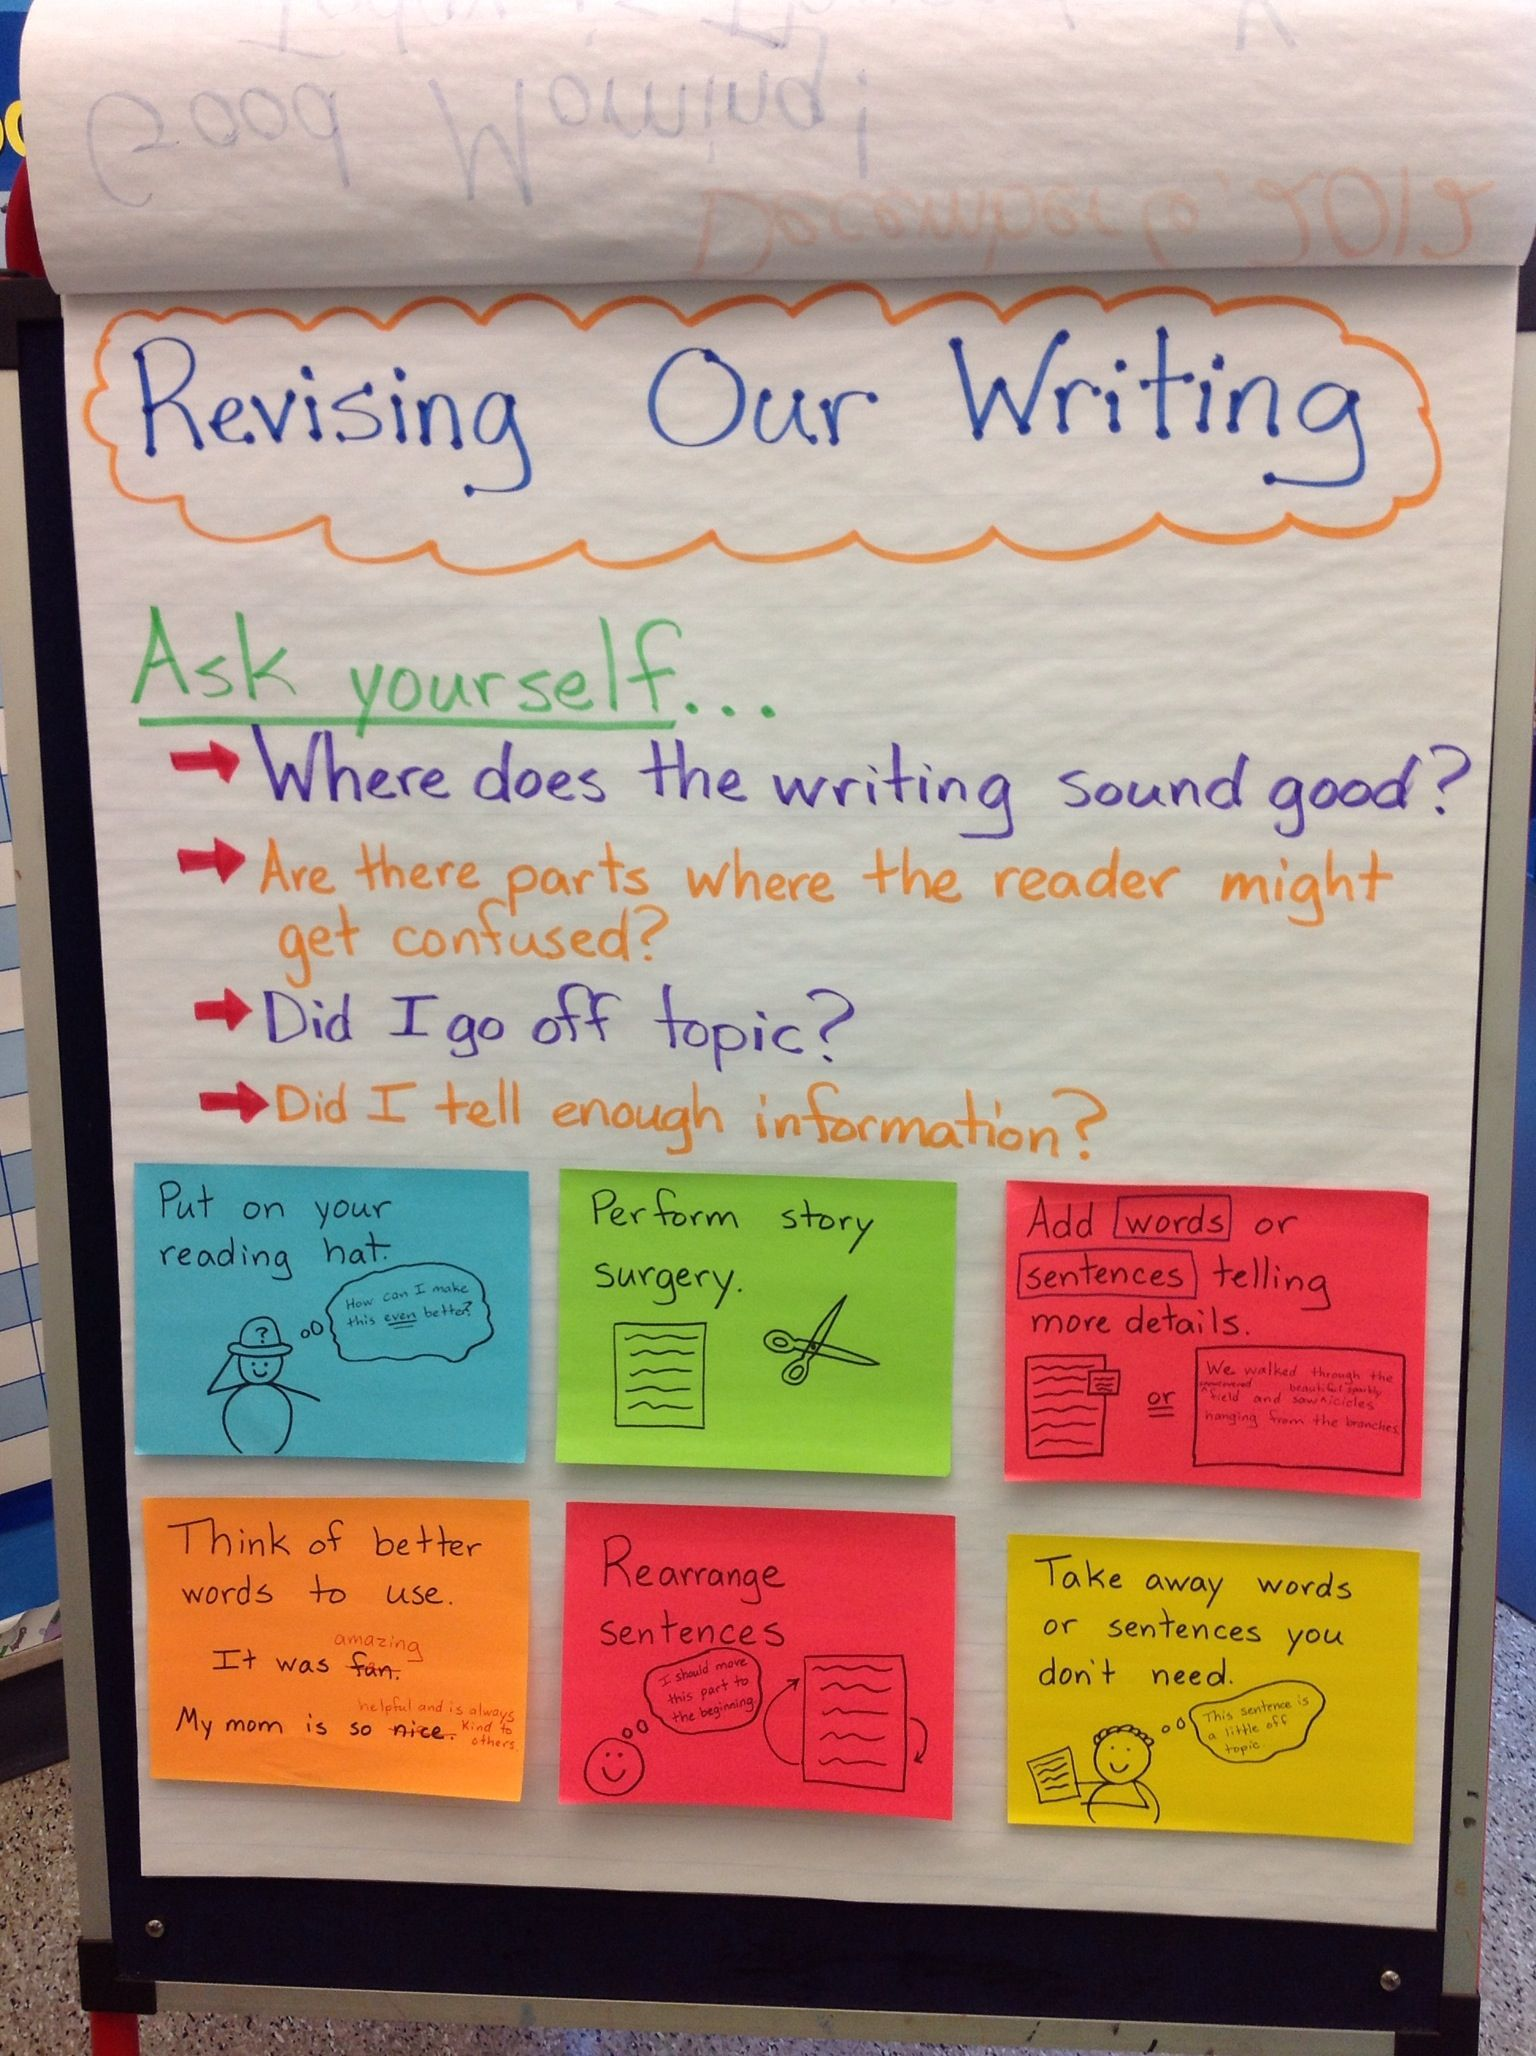 Revising Our Writing